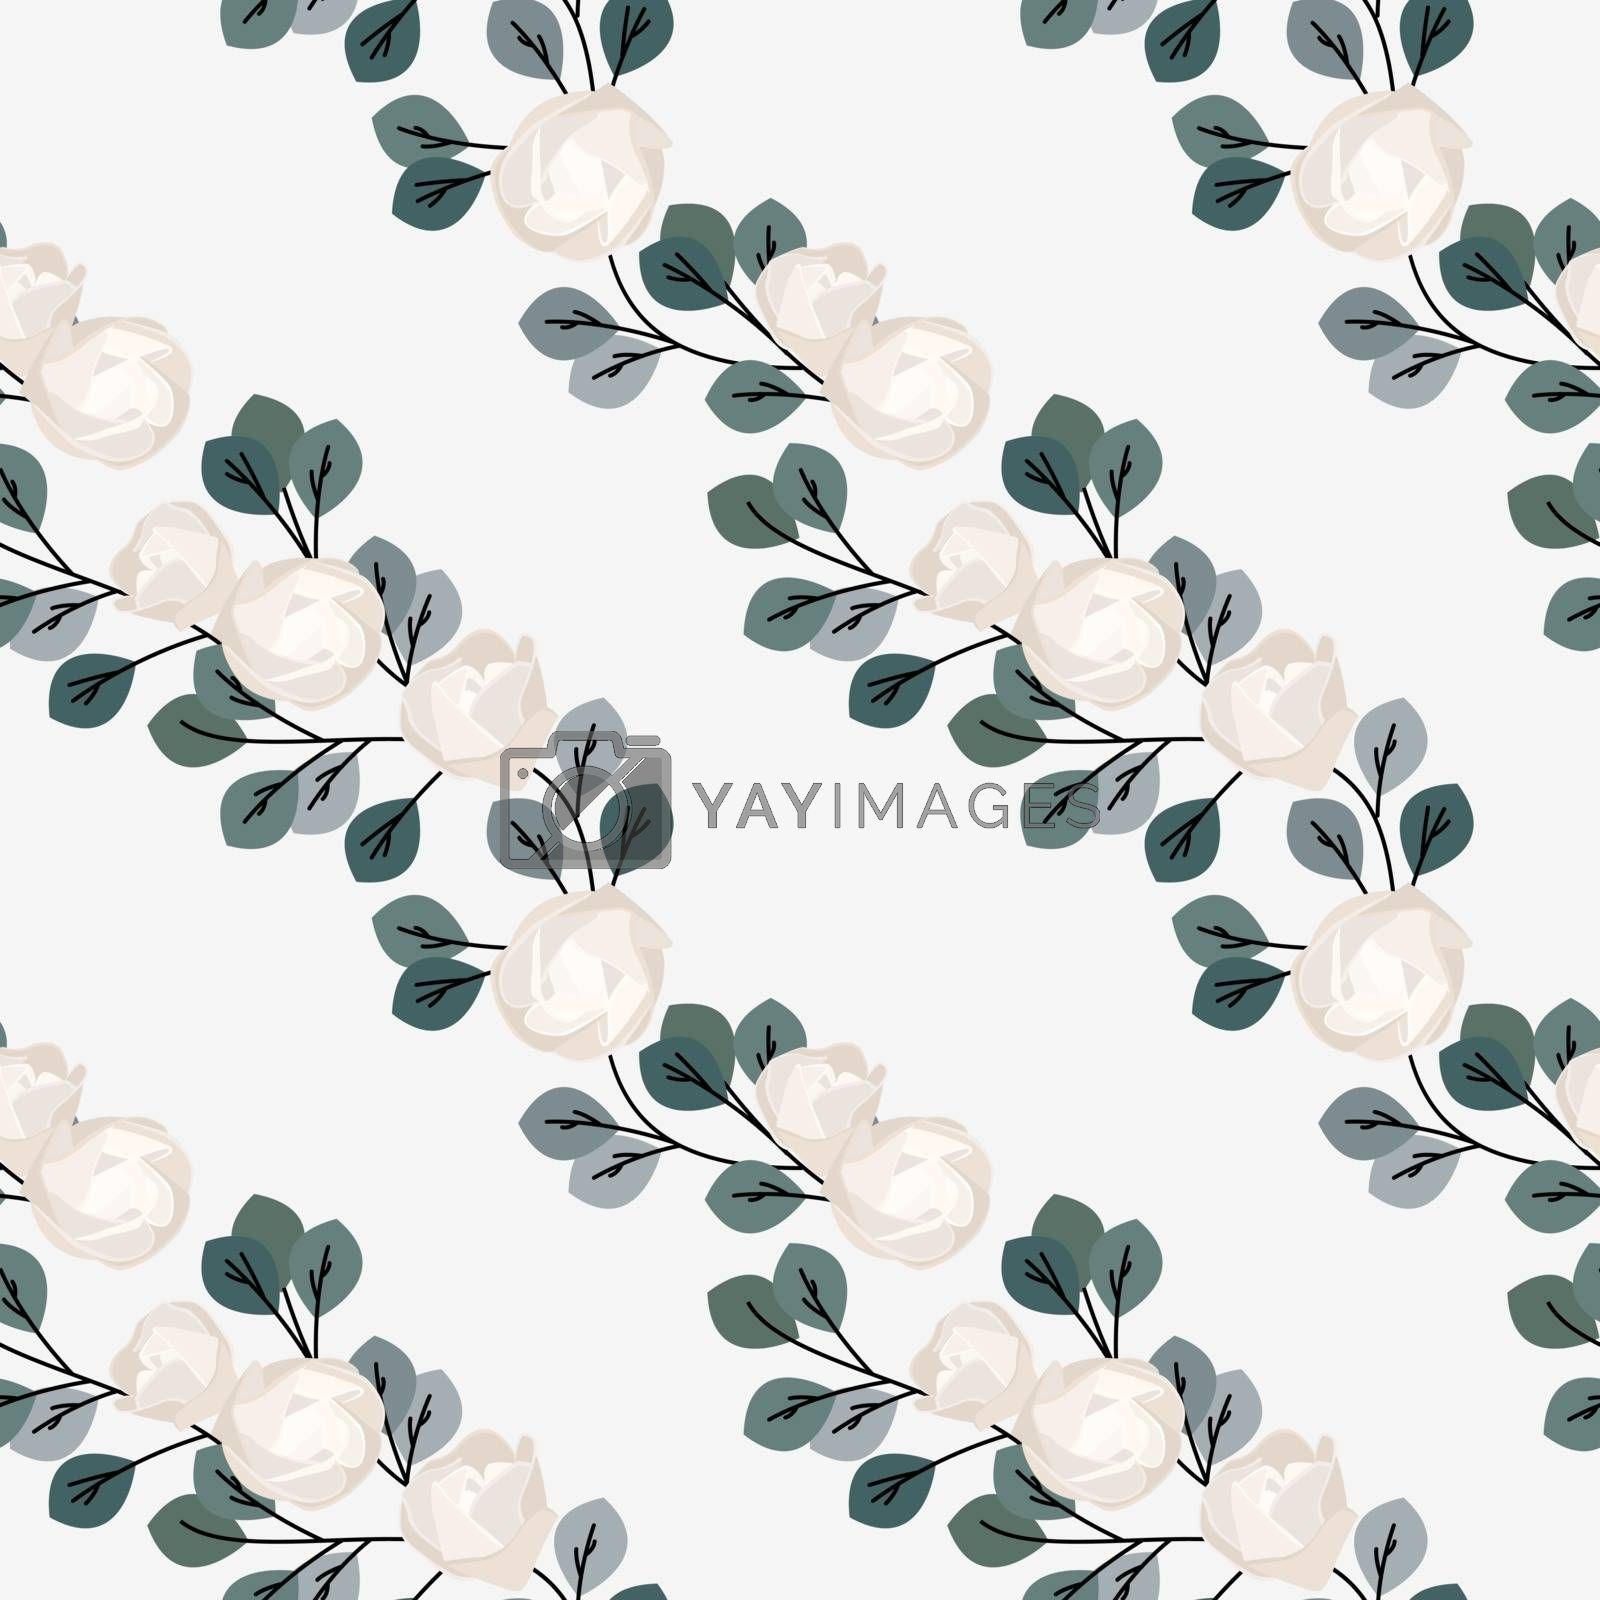 Vector illustration of a seamless pattern of roses with leaves. Natural background